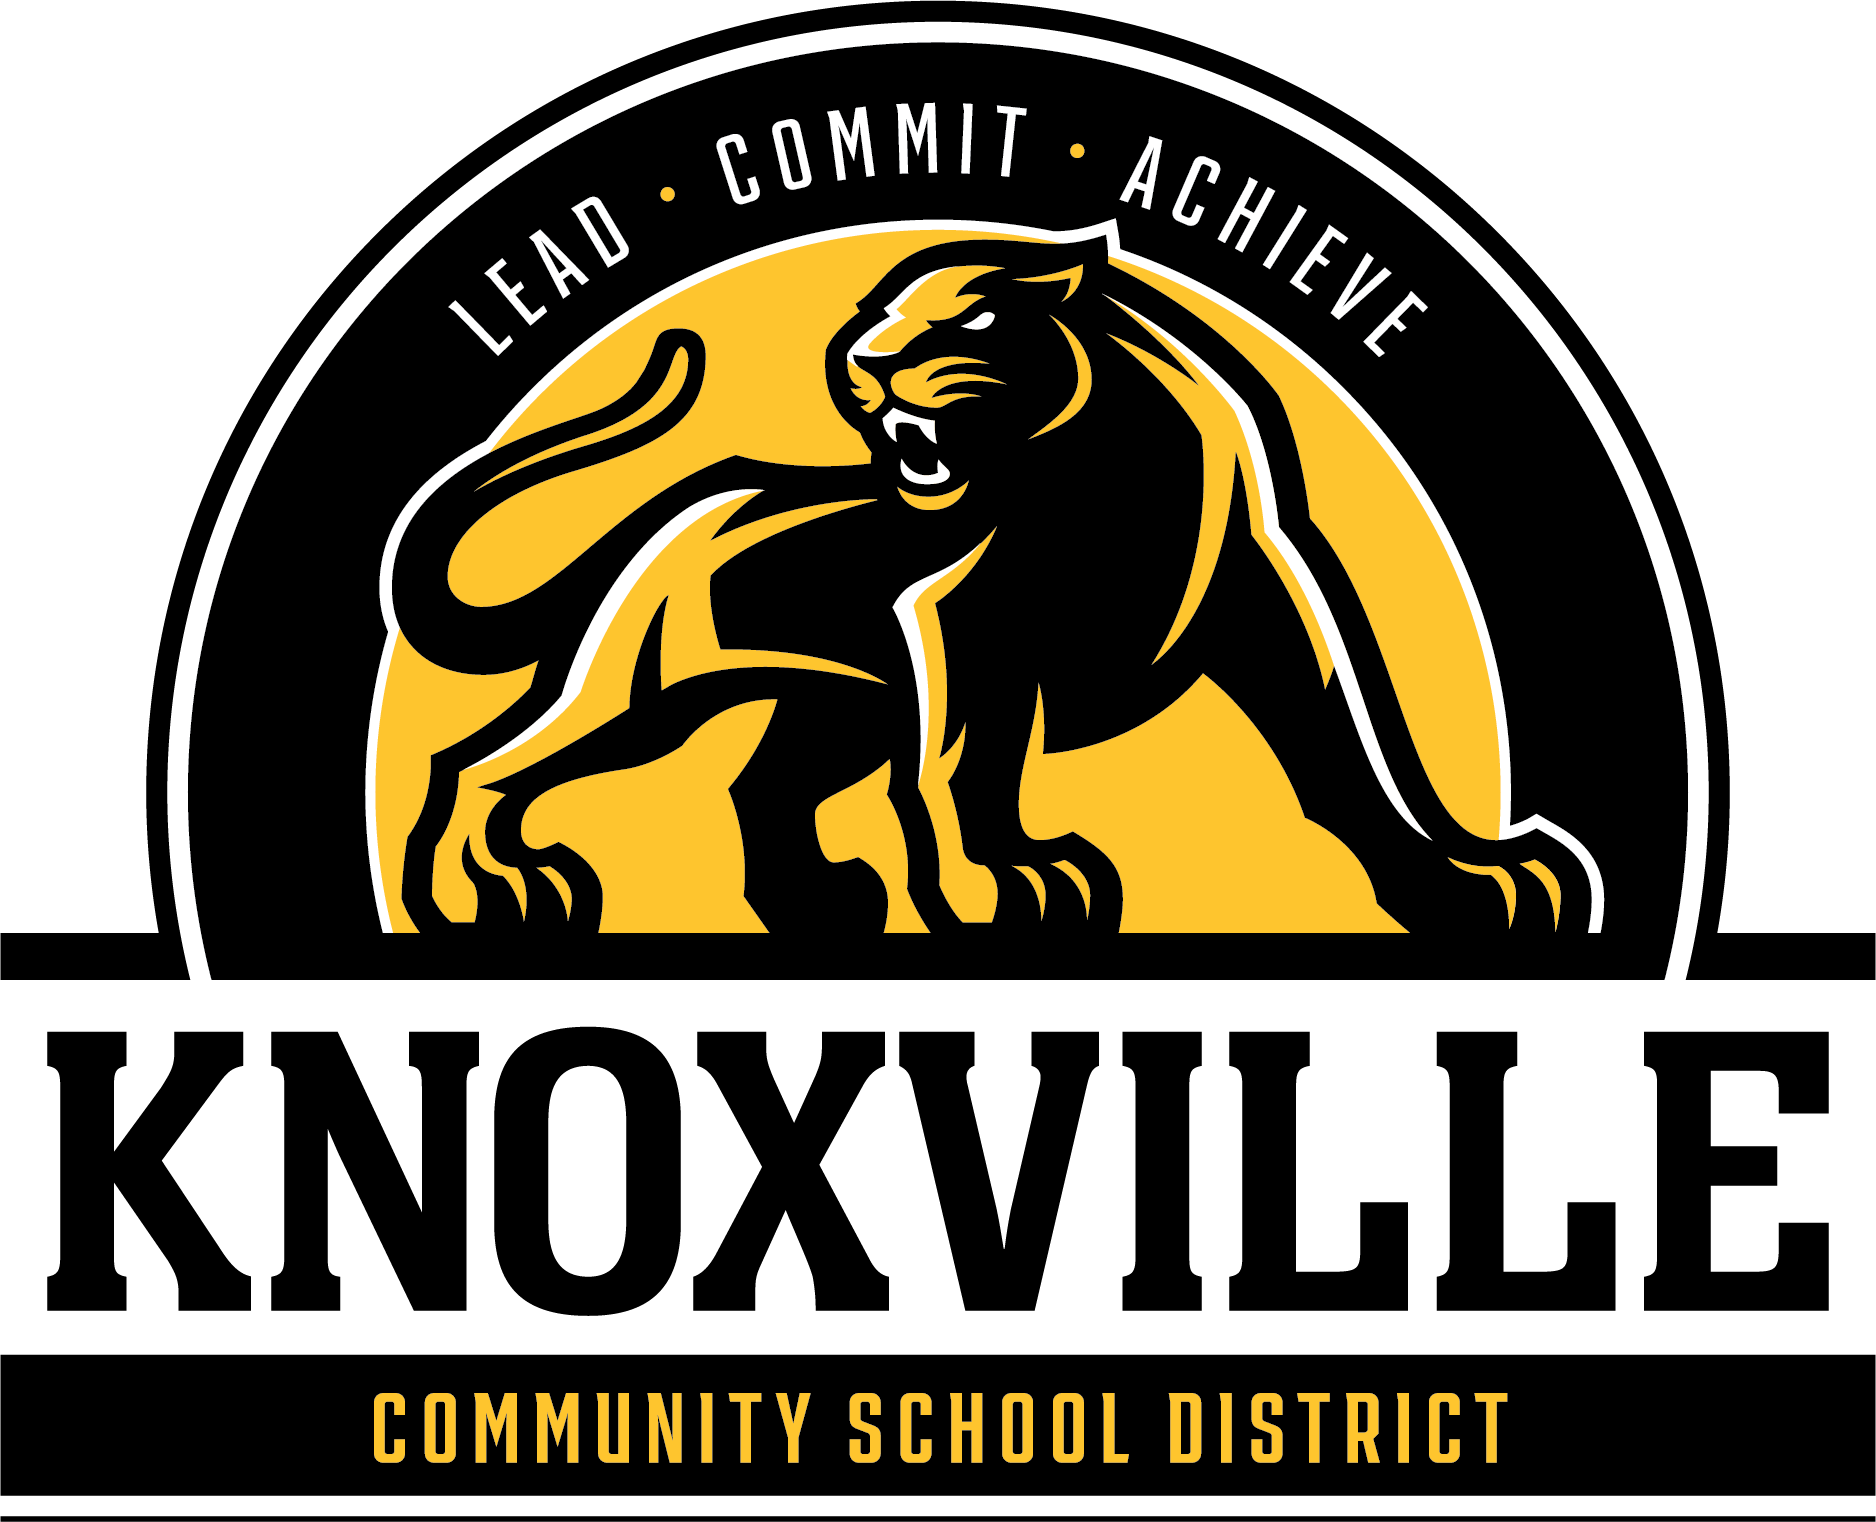 Knoxville CSD: Lead-Commit-Achieve